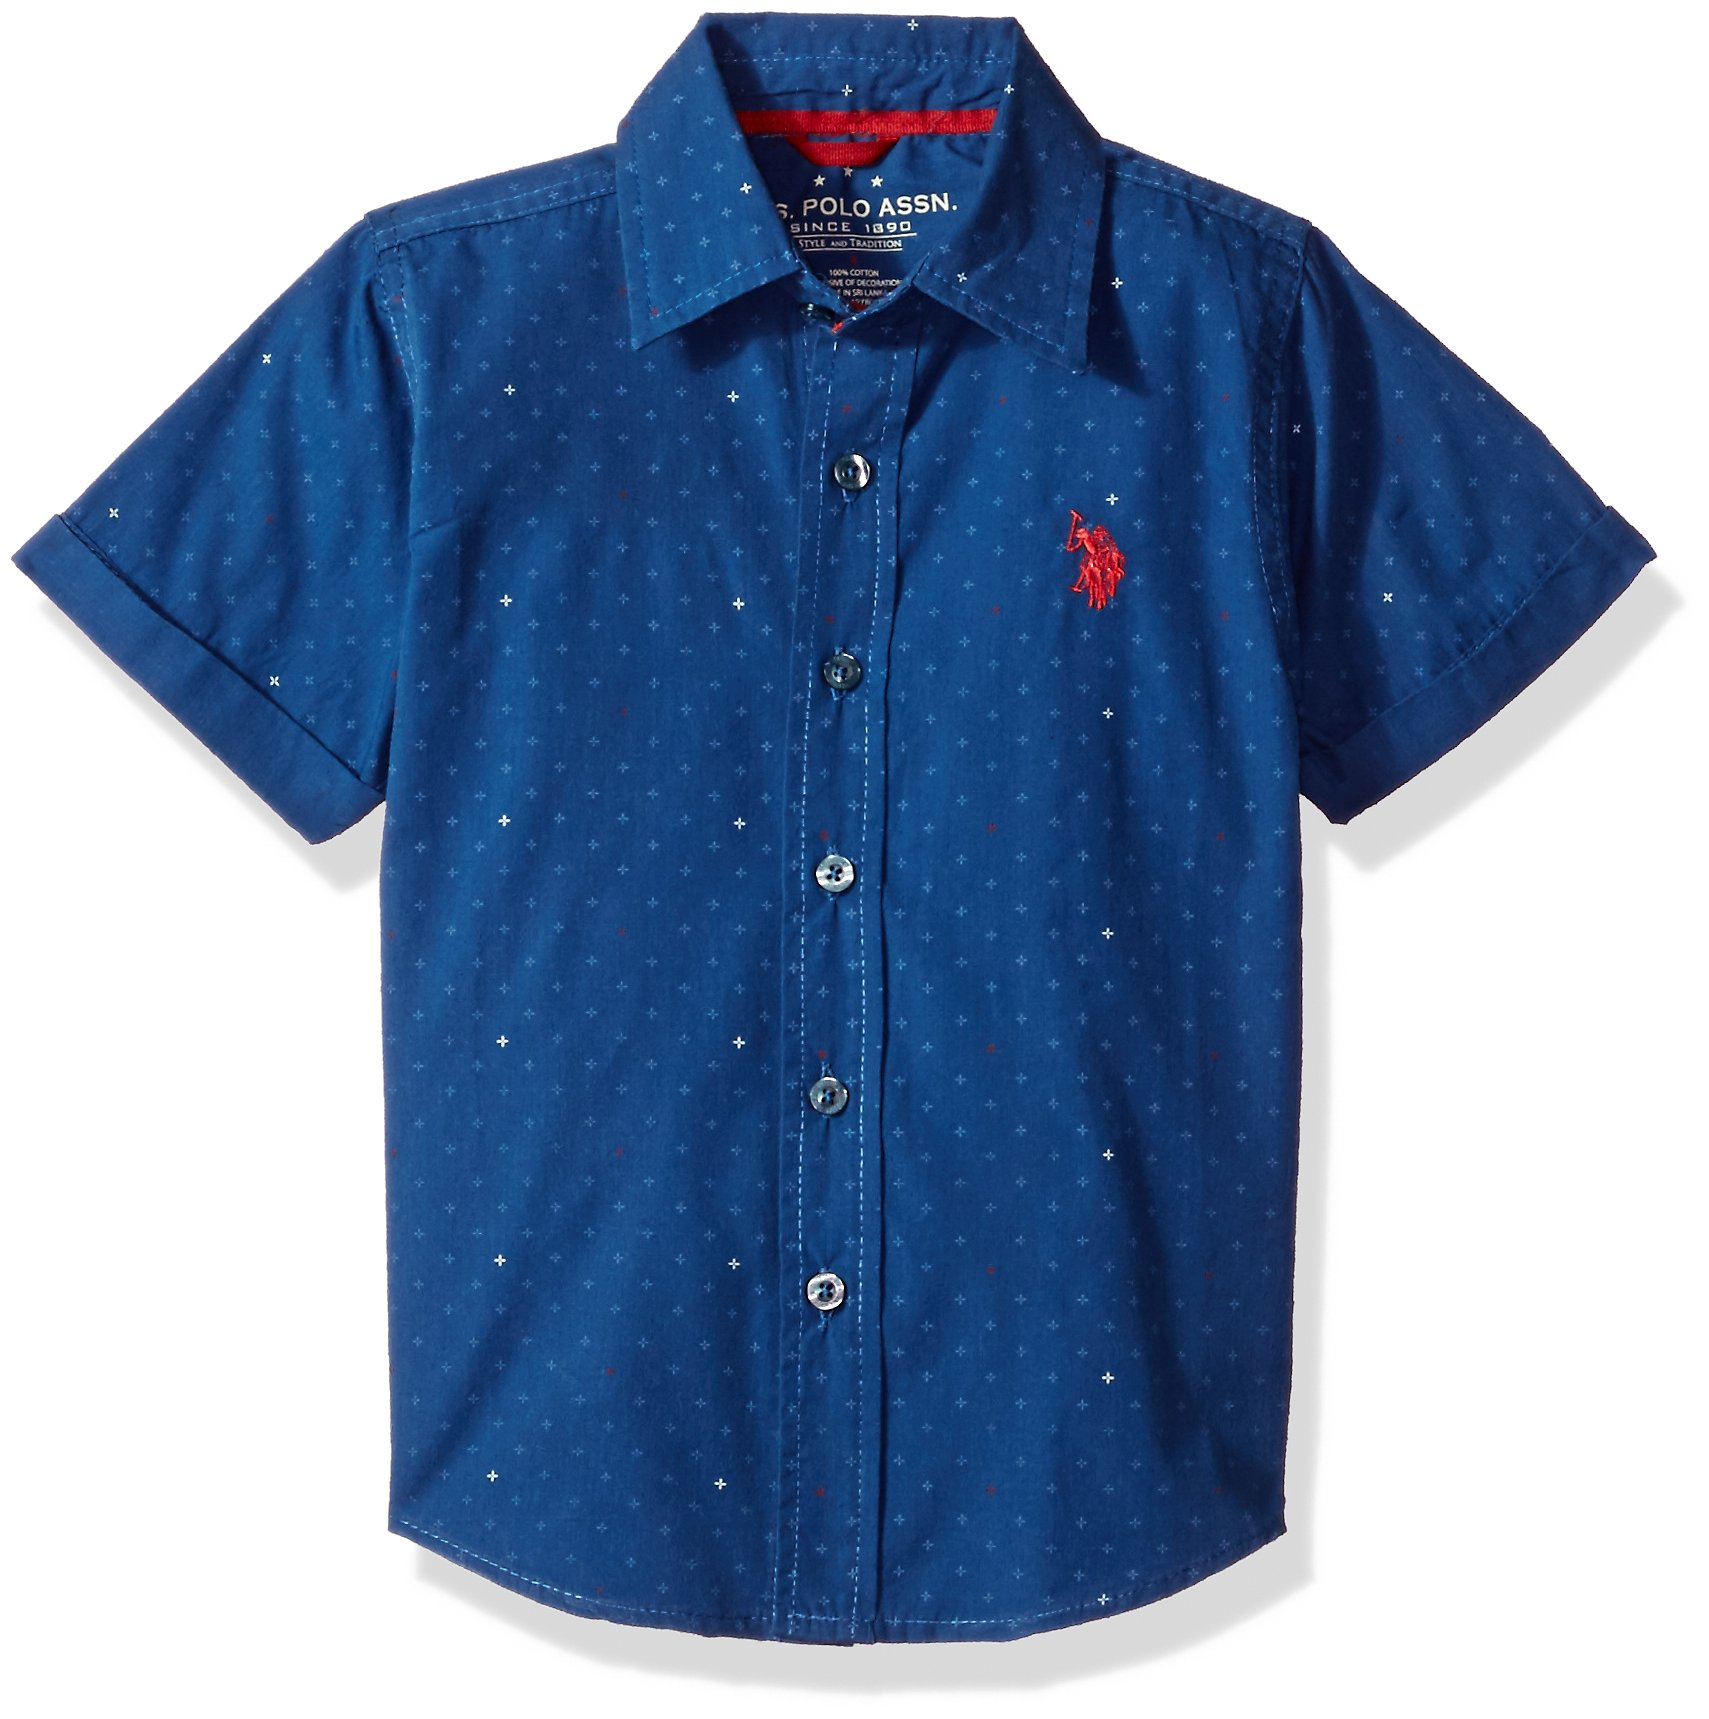 U.S. Polo Assn. Boys' Short Sleeve Chambray Sport Shirt